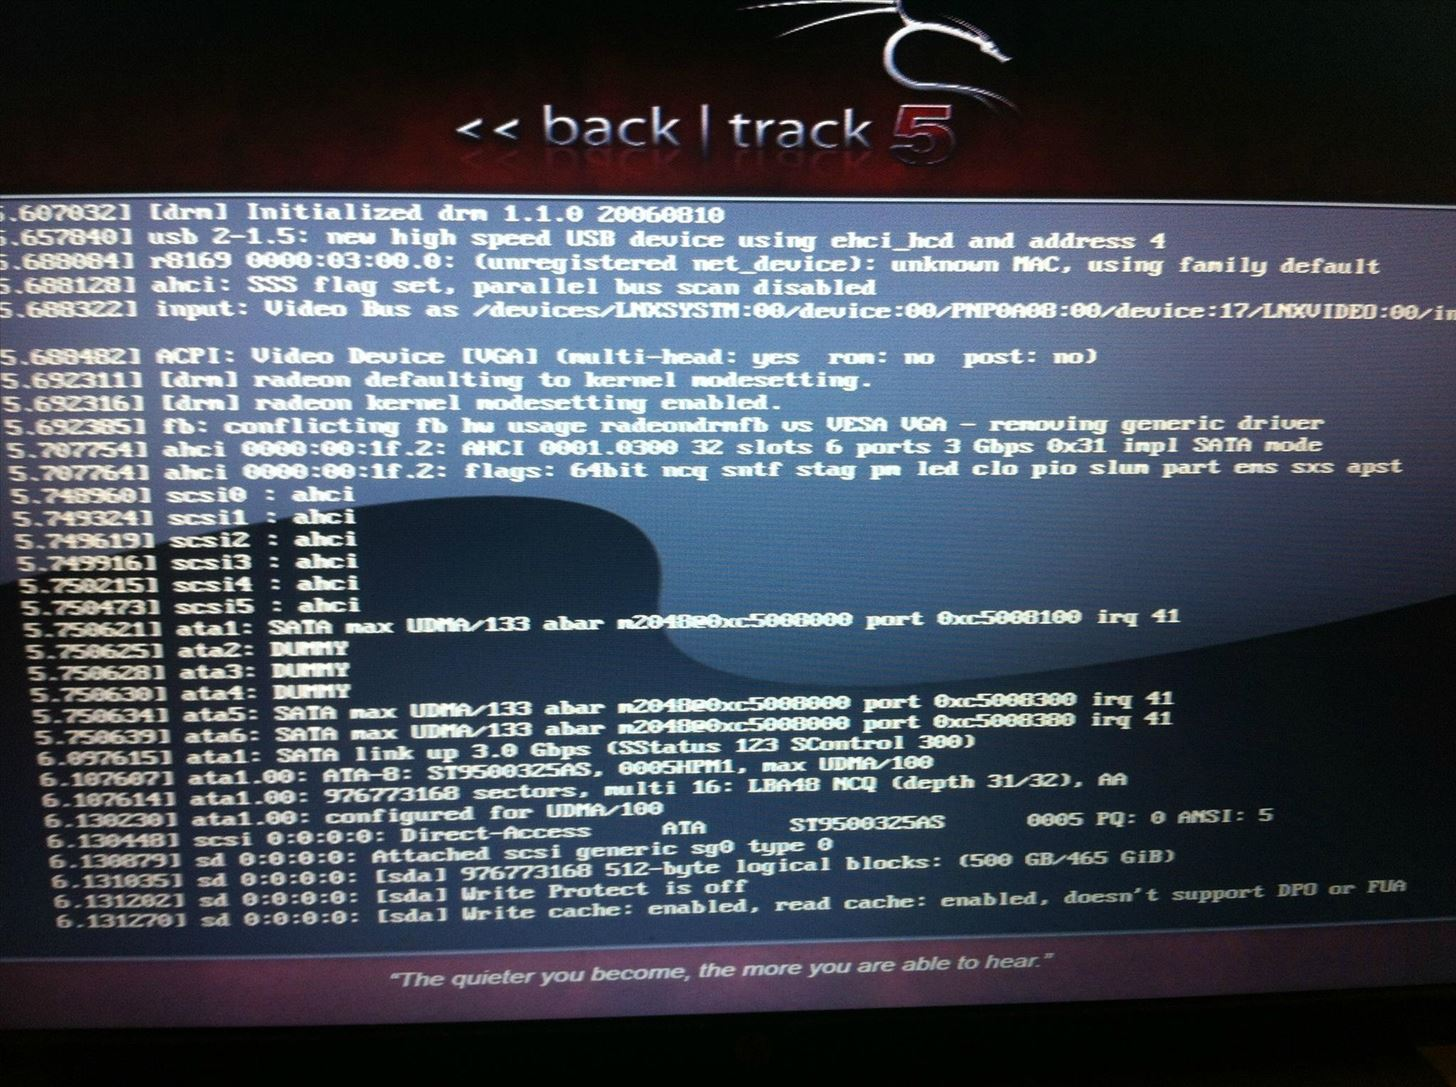 Hack Like a Pro: How to Install BackTrack 5 (With Metasploit) as a